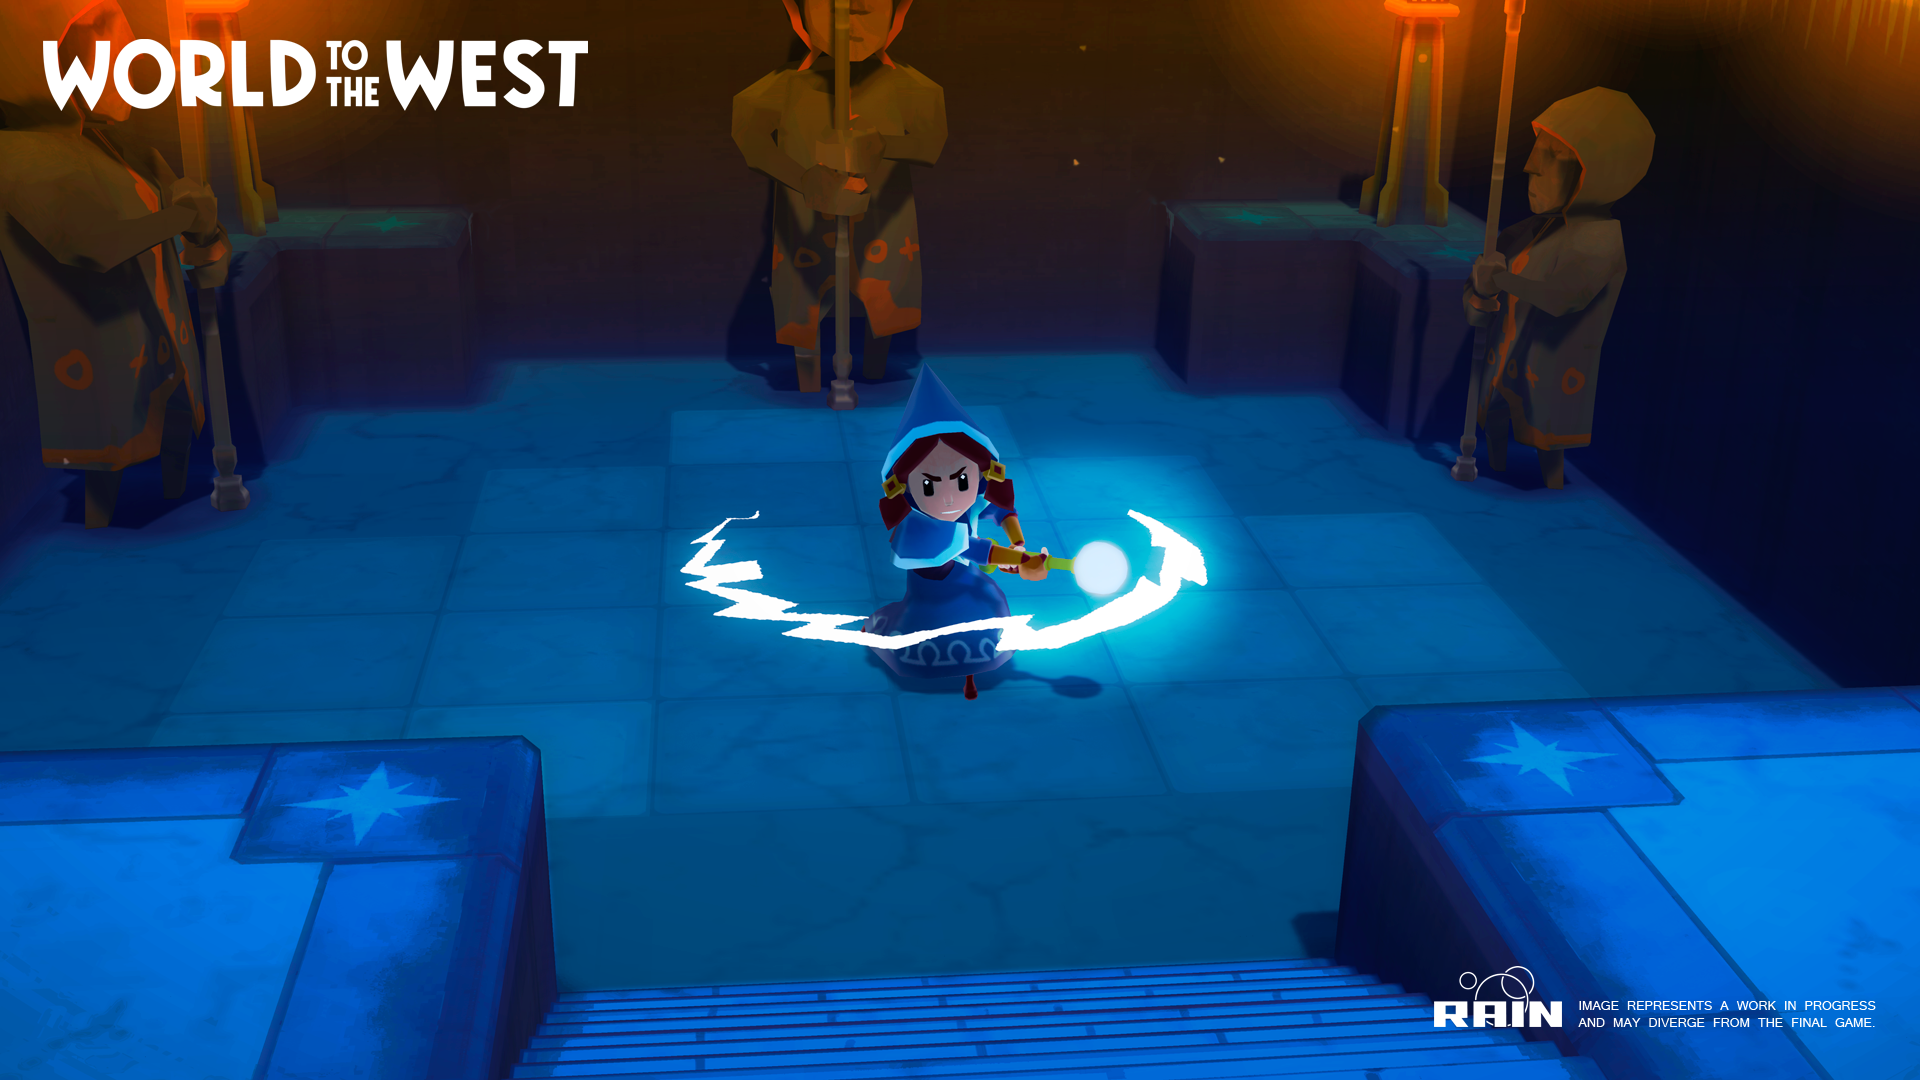 World to the West #2